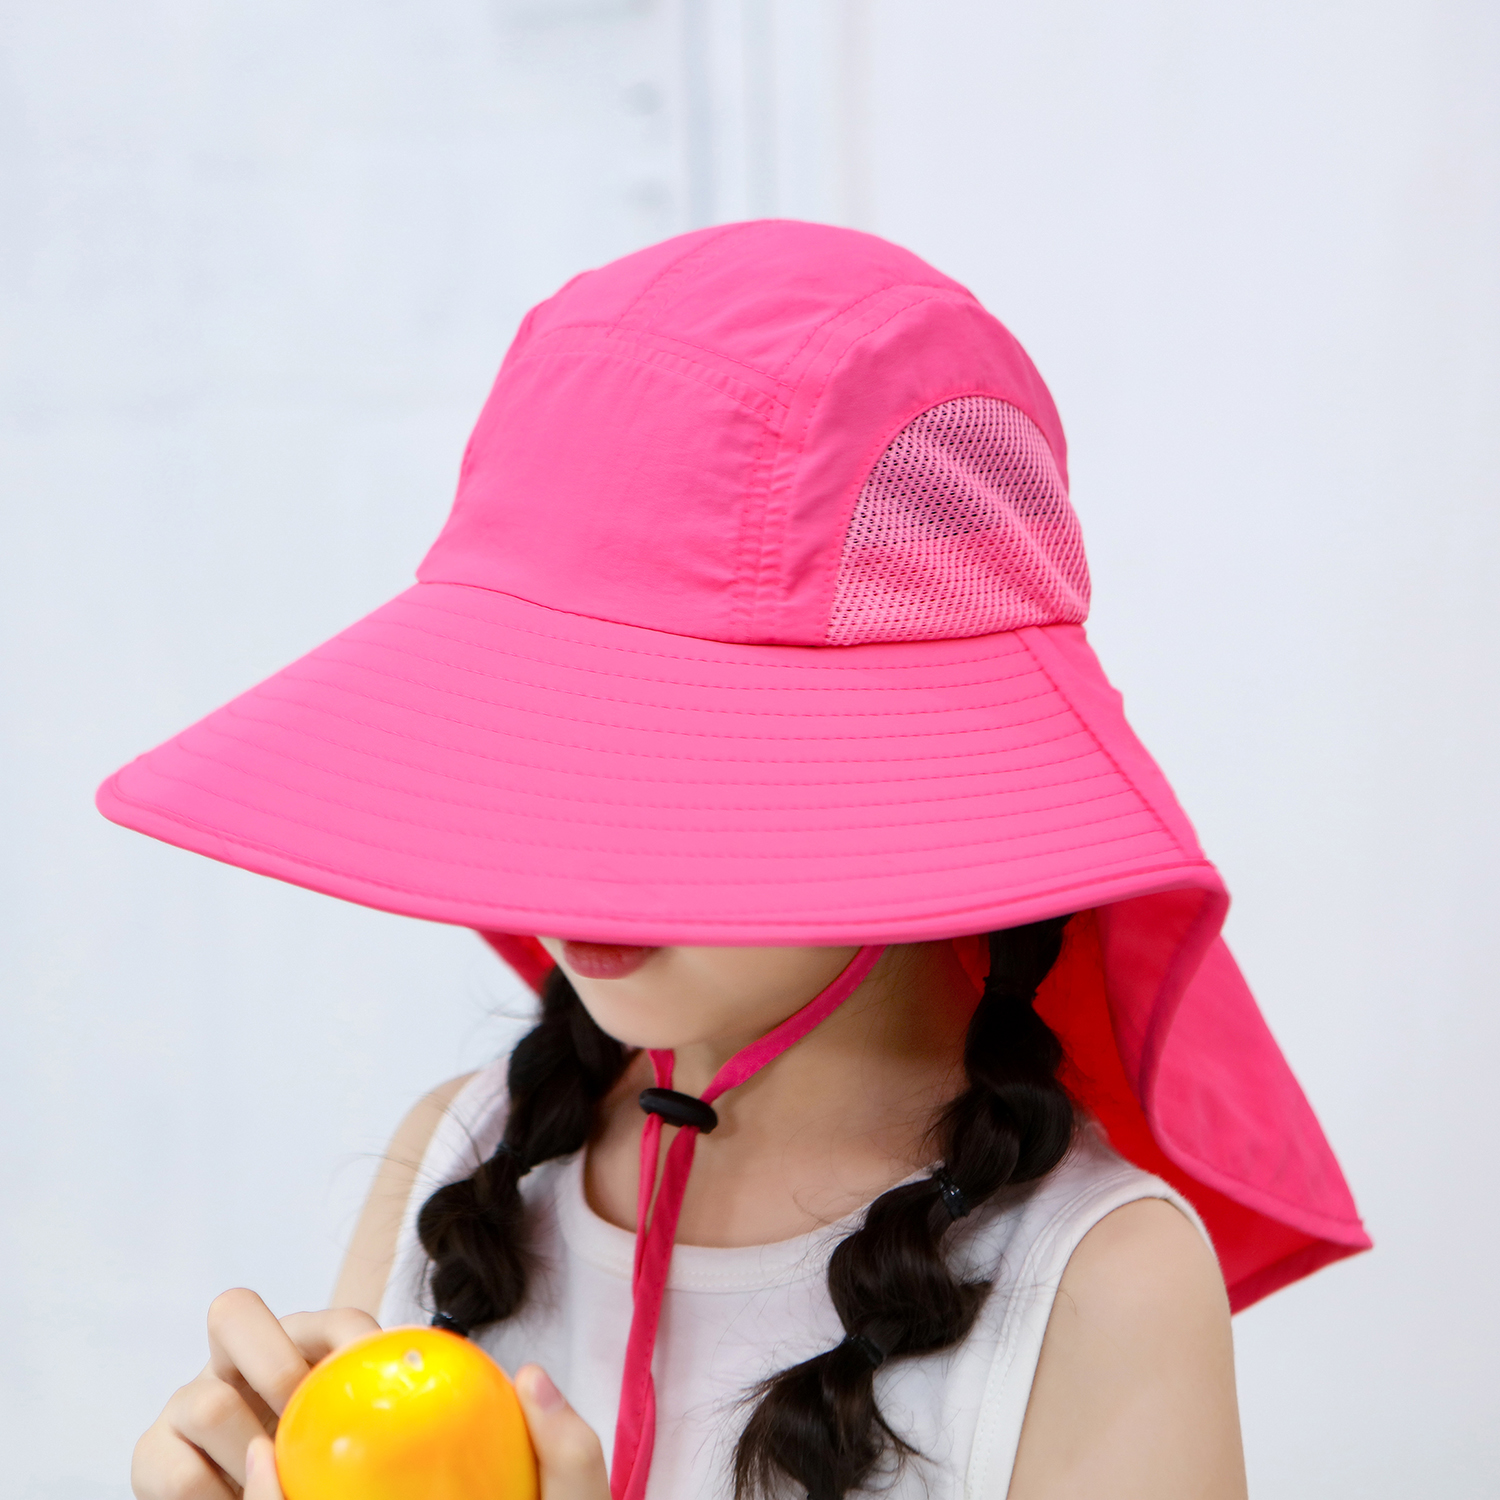 Children Sun Hat Wide Brim Sun Cap With Neck Flap For Travel Camping Hiking Fishing Boating